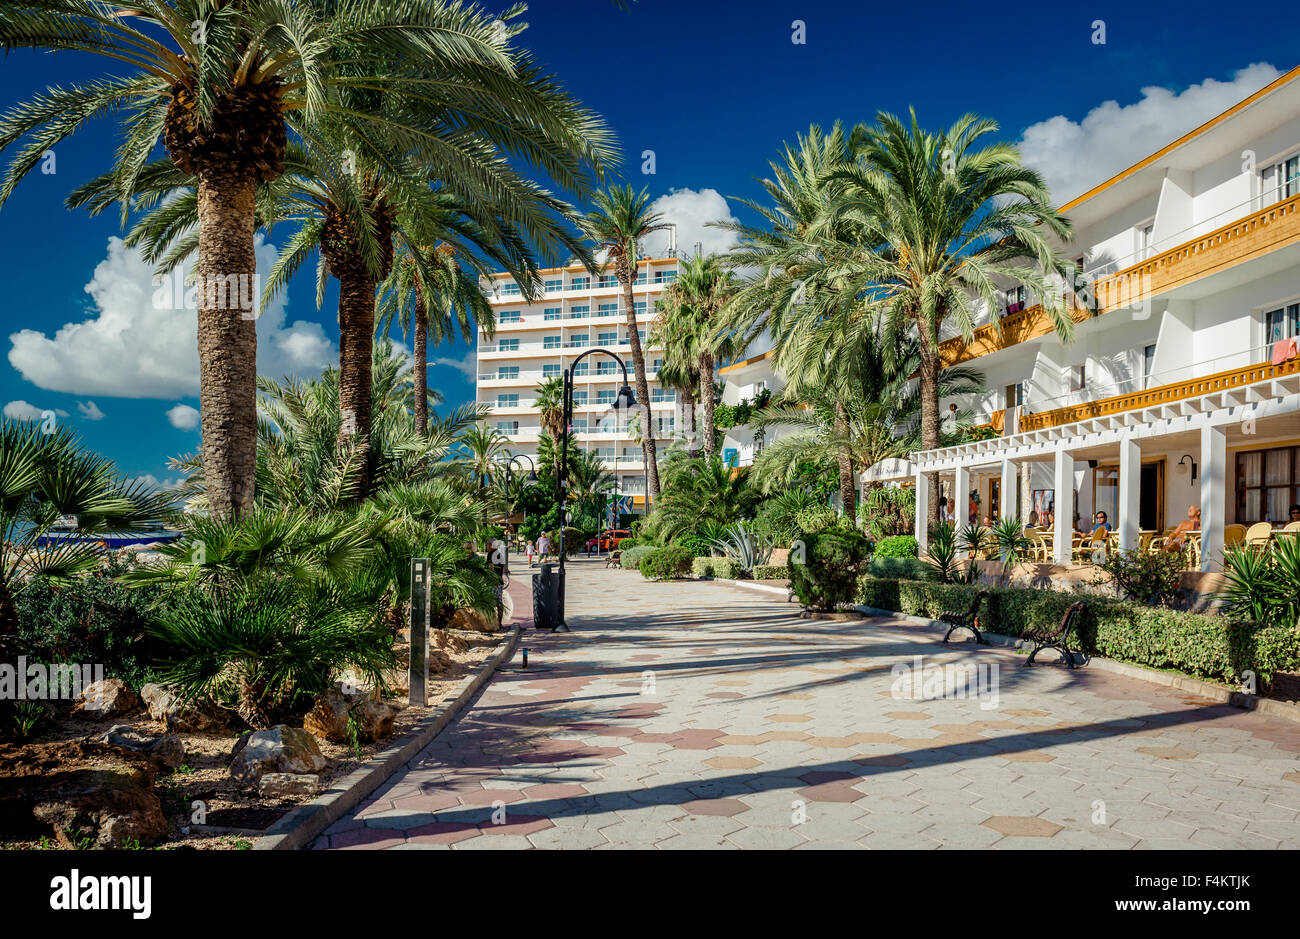 View of Ibiza seafront - Stock Image